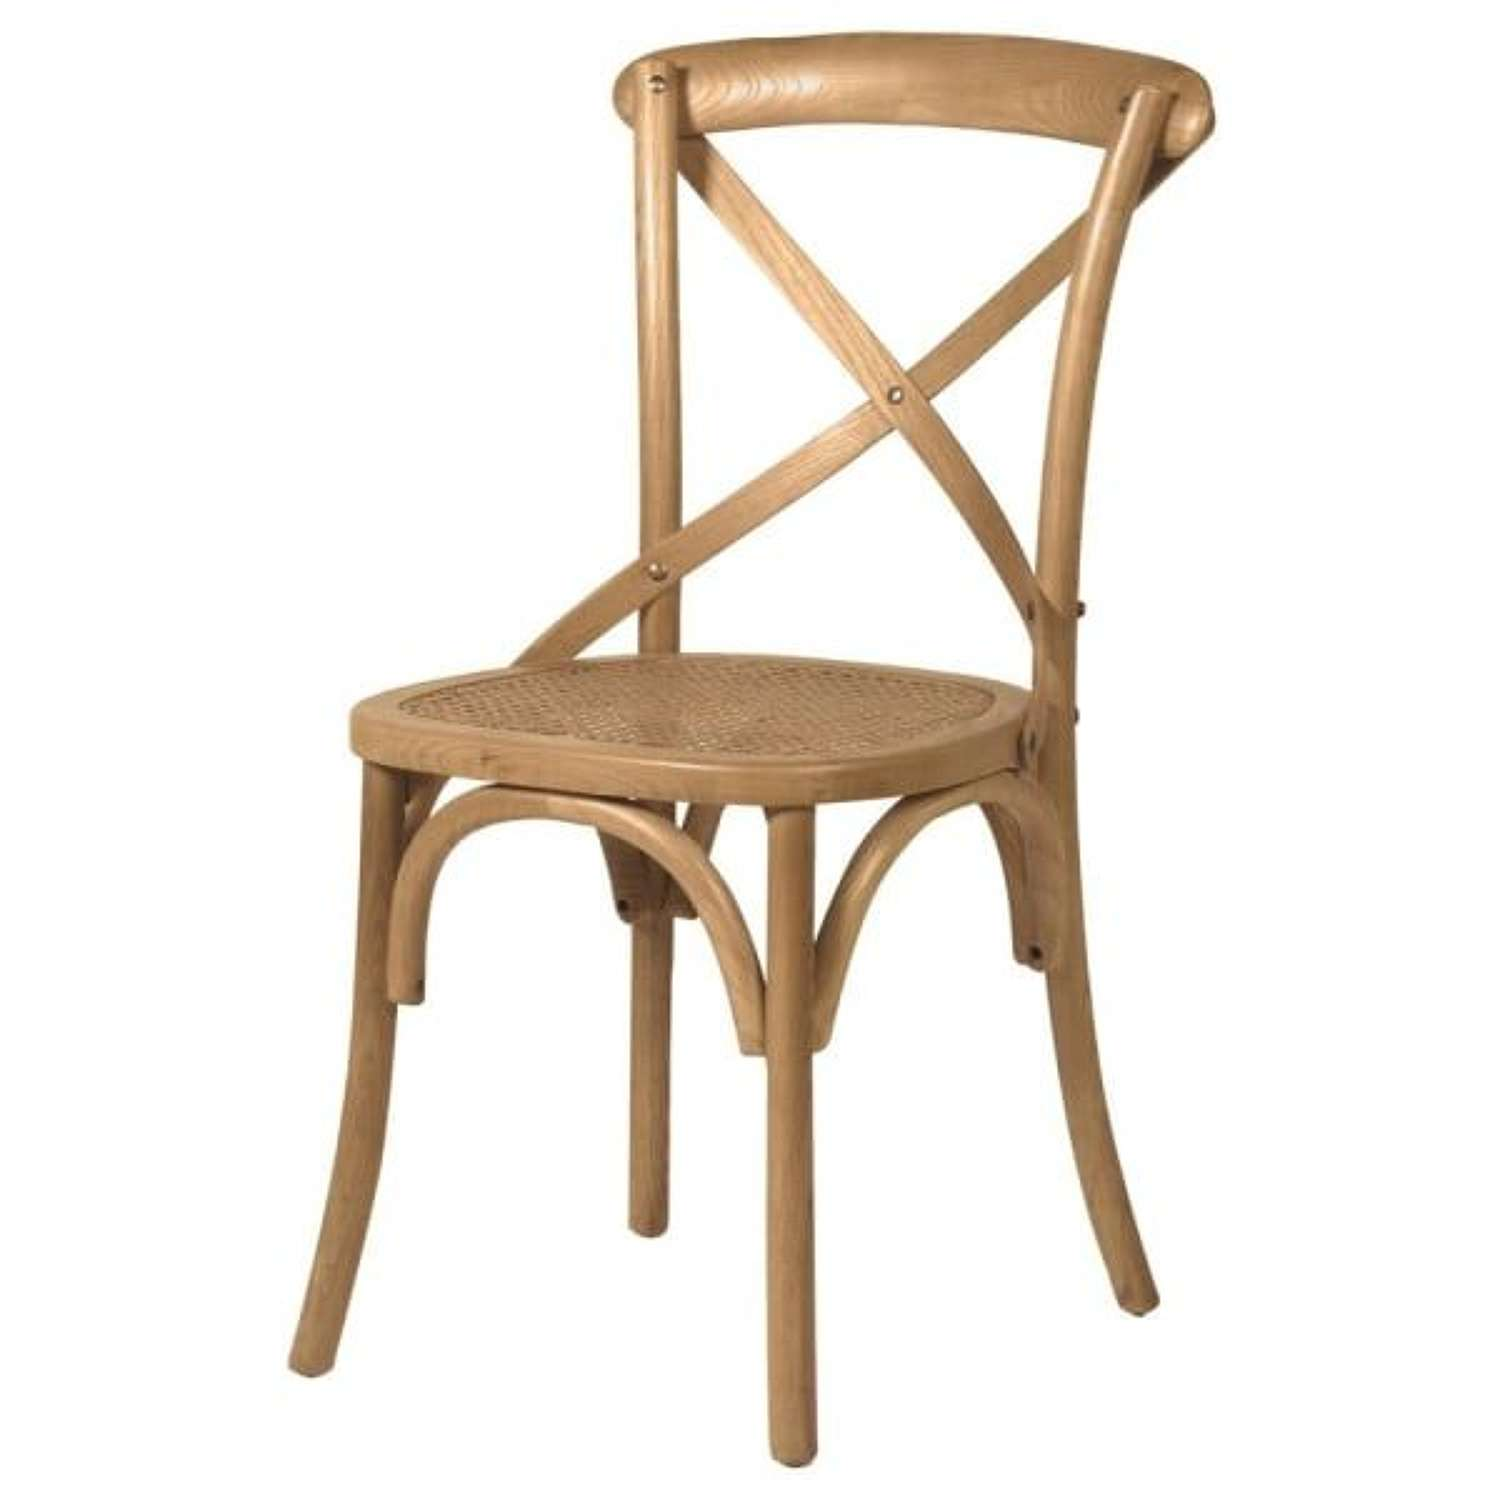 Gainsborough X-back Dining Chair with Rattan Seat.